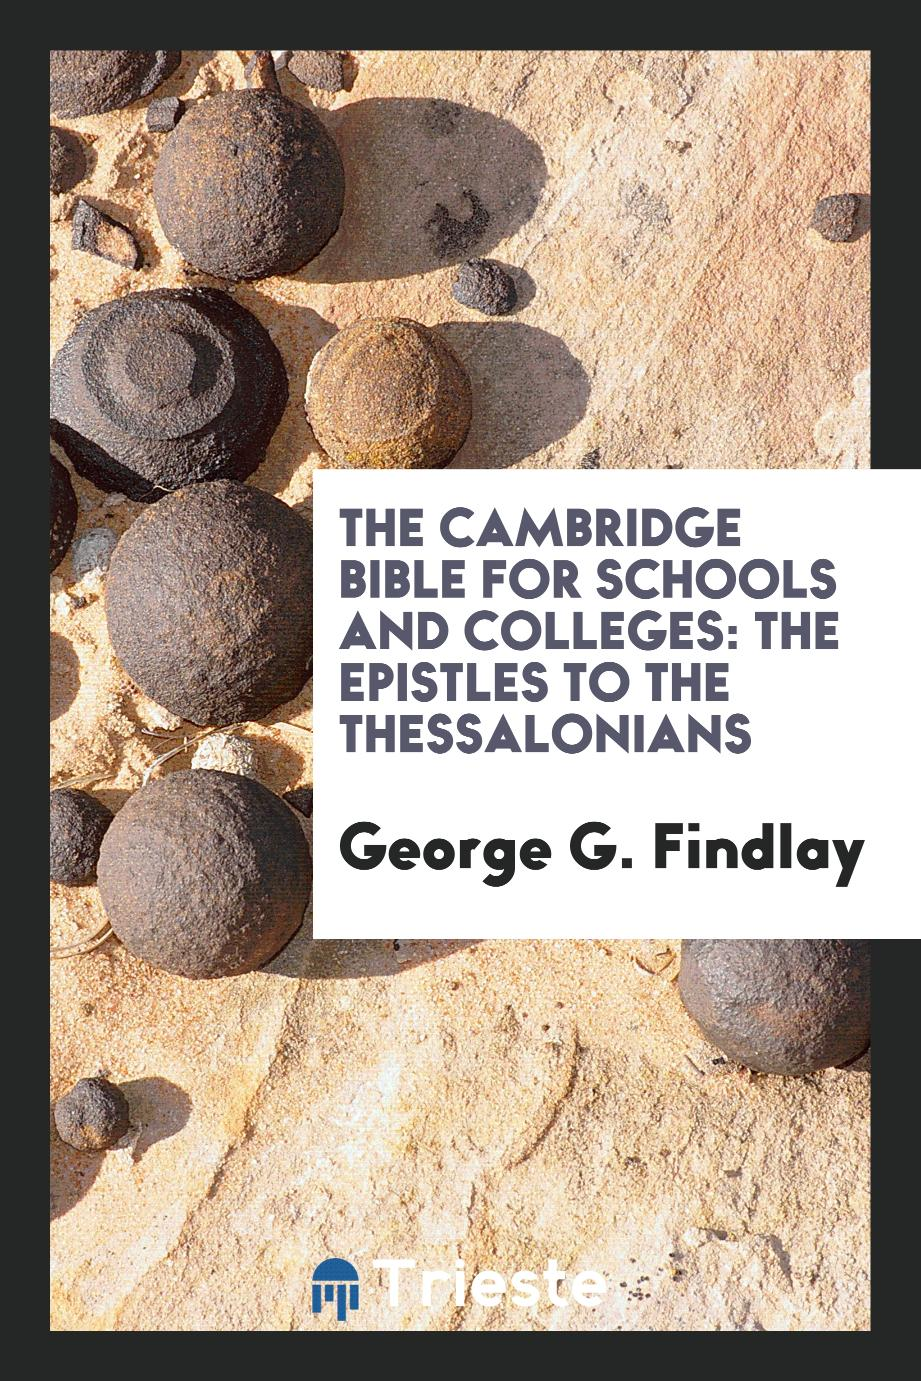 The Cambridge Bible for Schools and Colleges: The Epistles to the Thessalonians